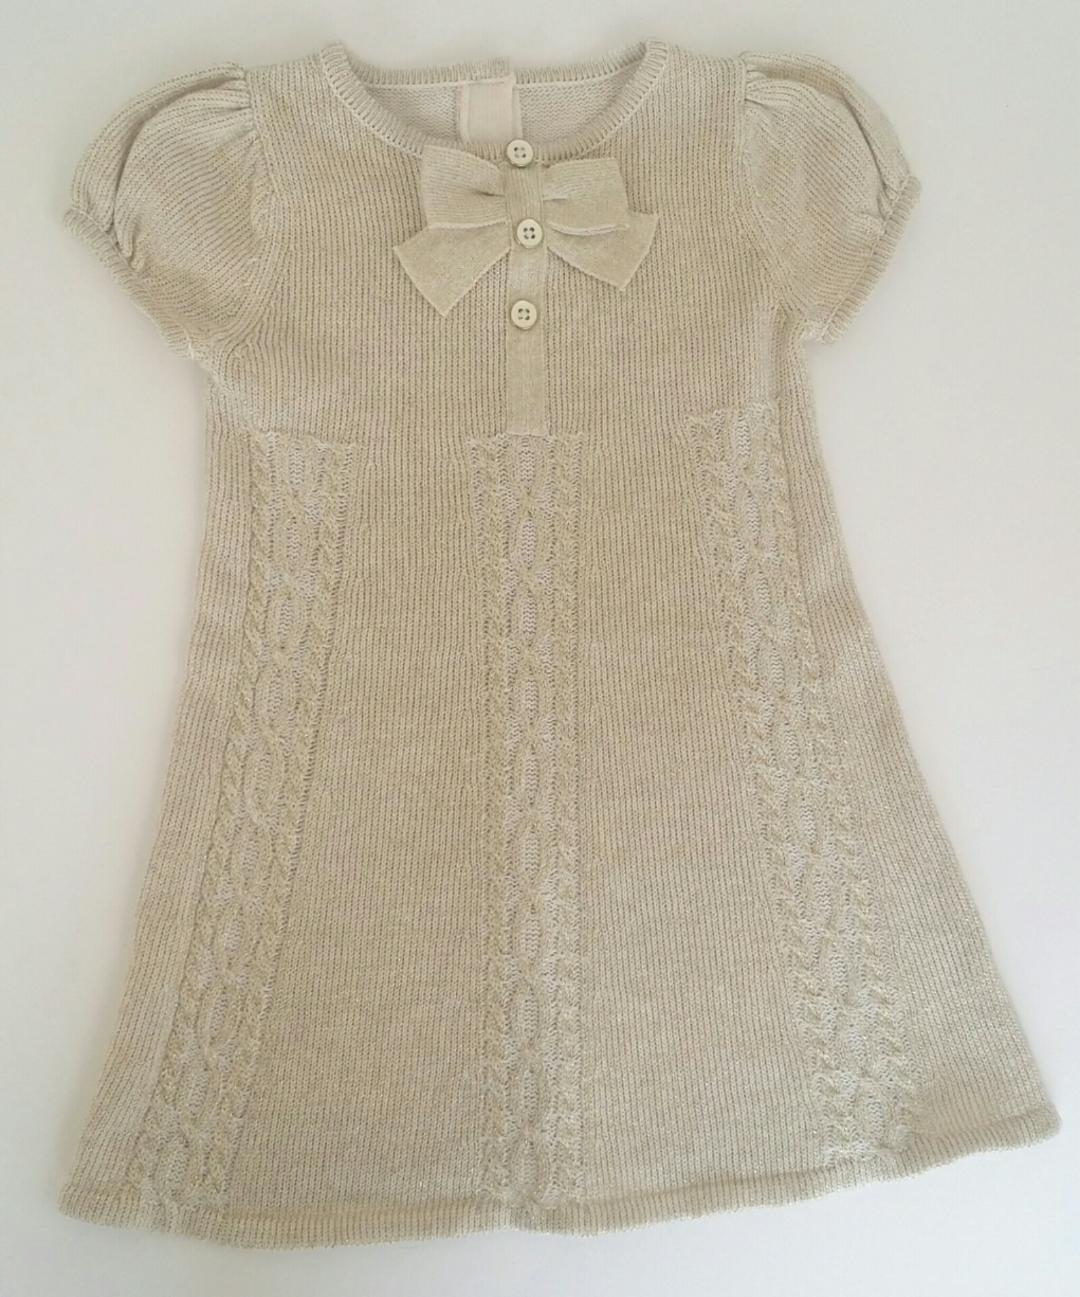 Janie--Jack-18-24-MONTHS-Metallic-Dress_2098918A.jpg